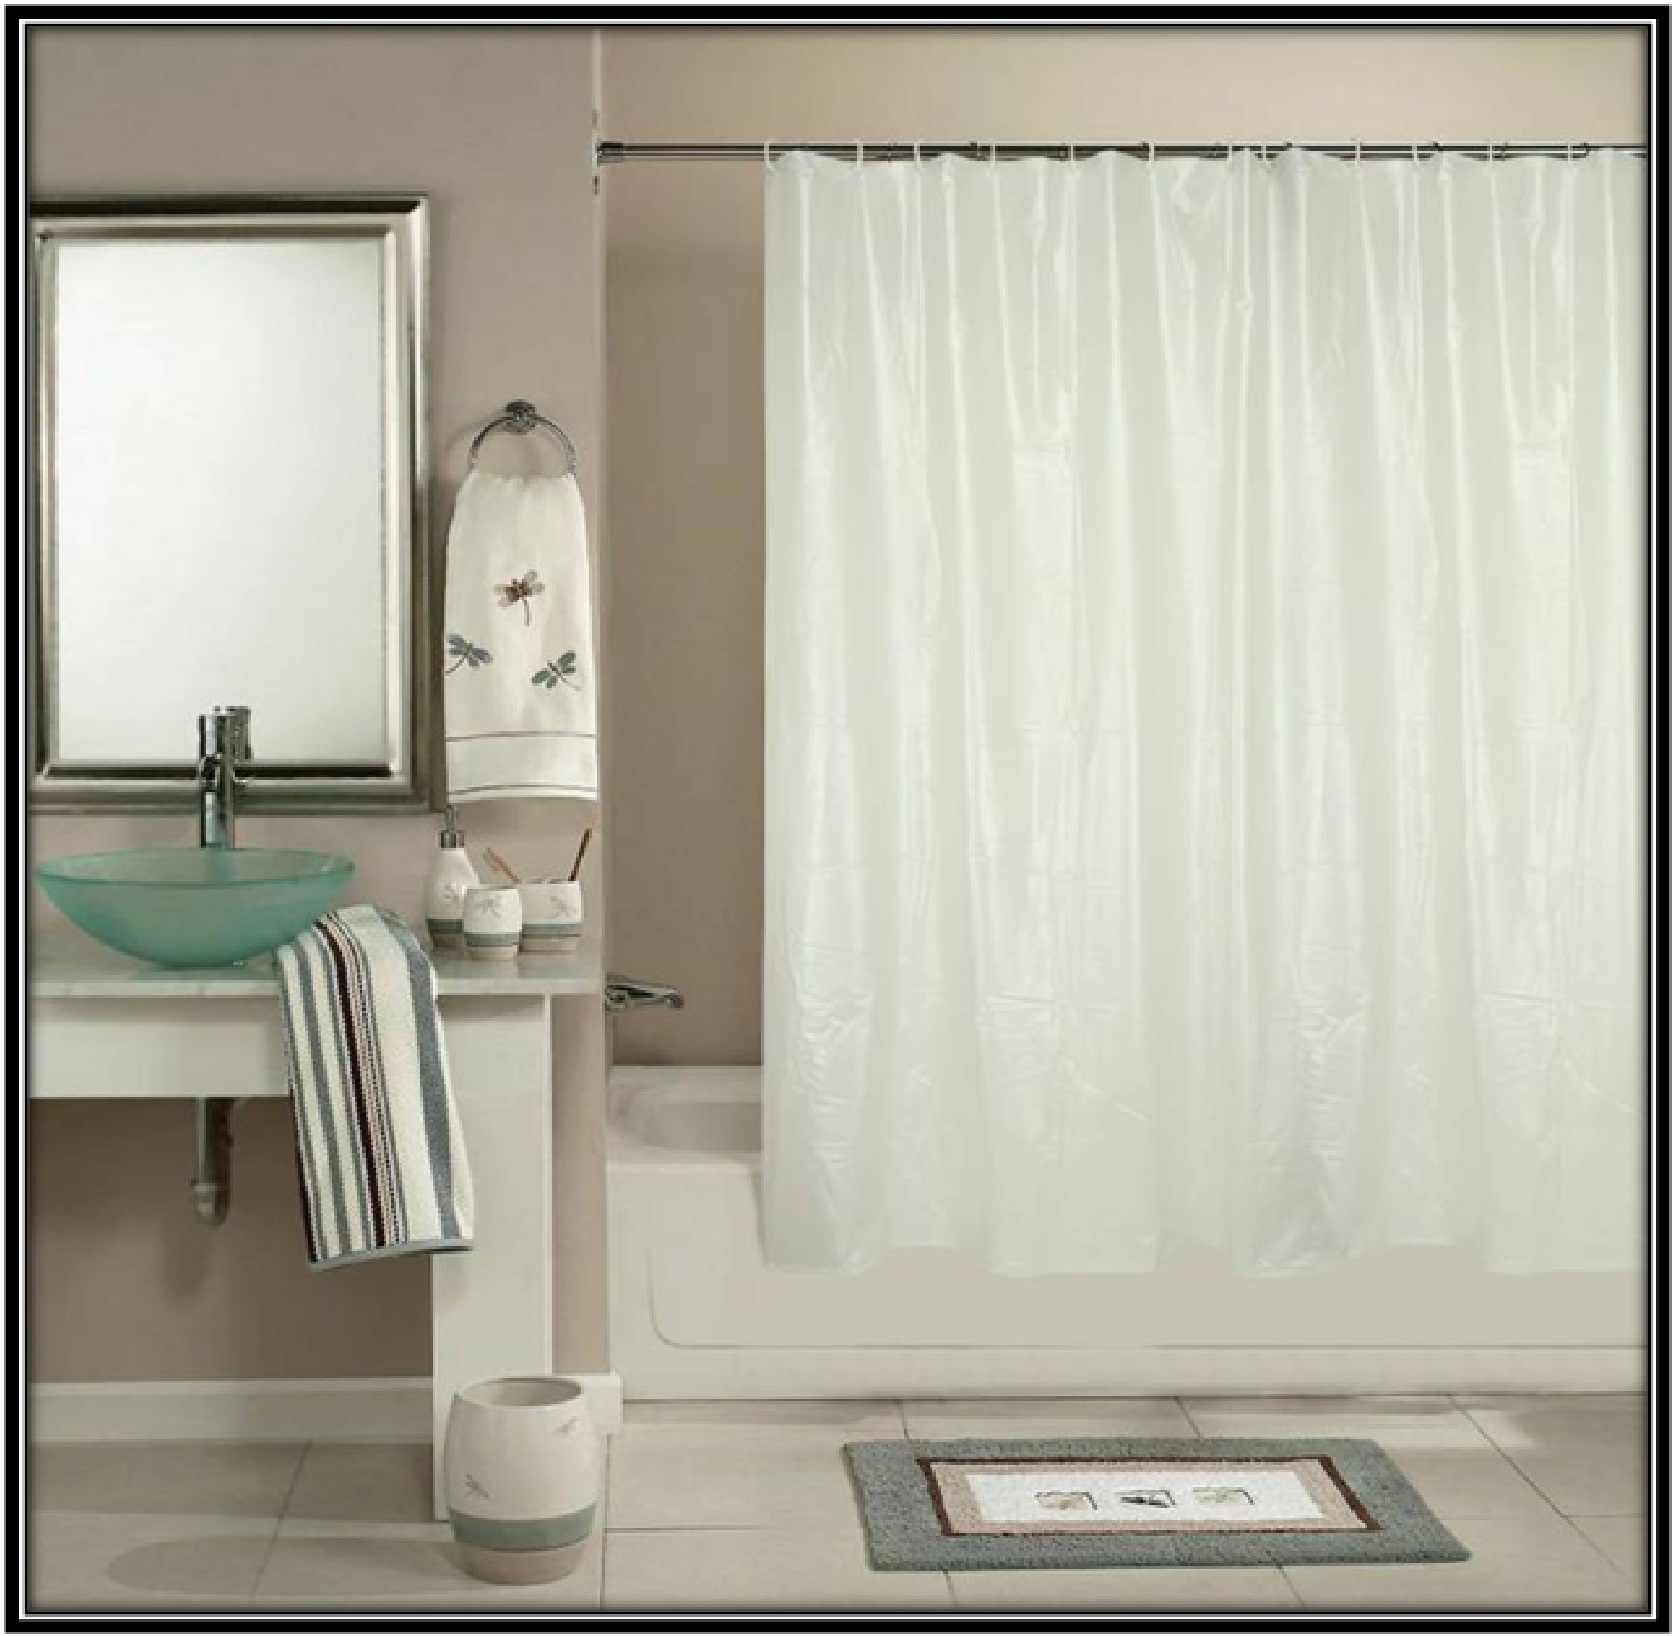 White Self Design Shower Curtain for bathroom - home decor ideas